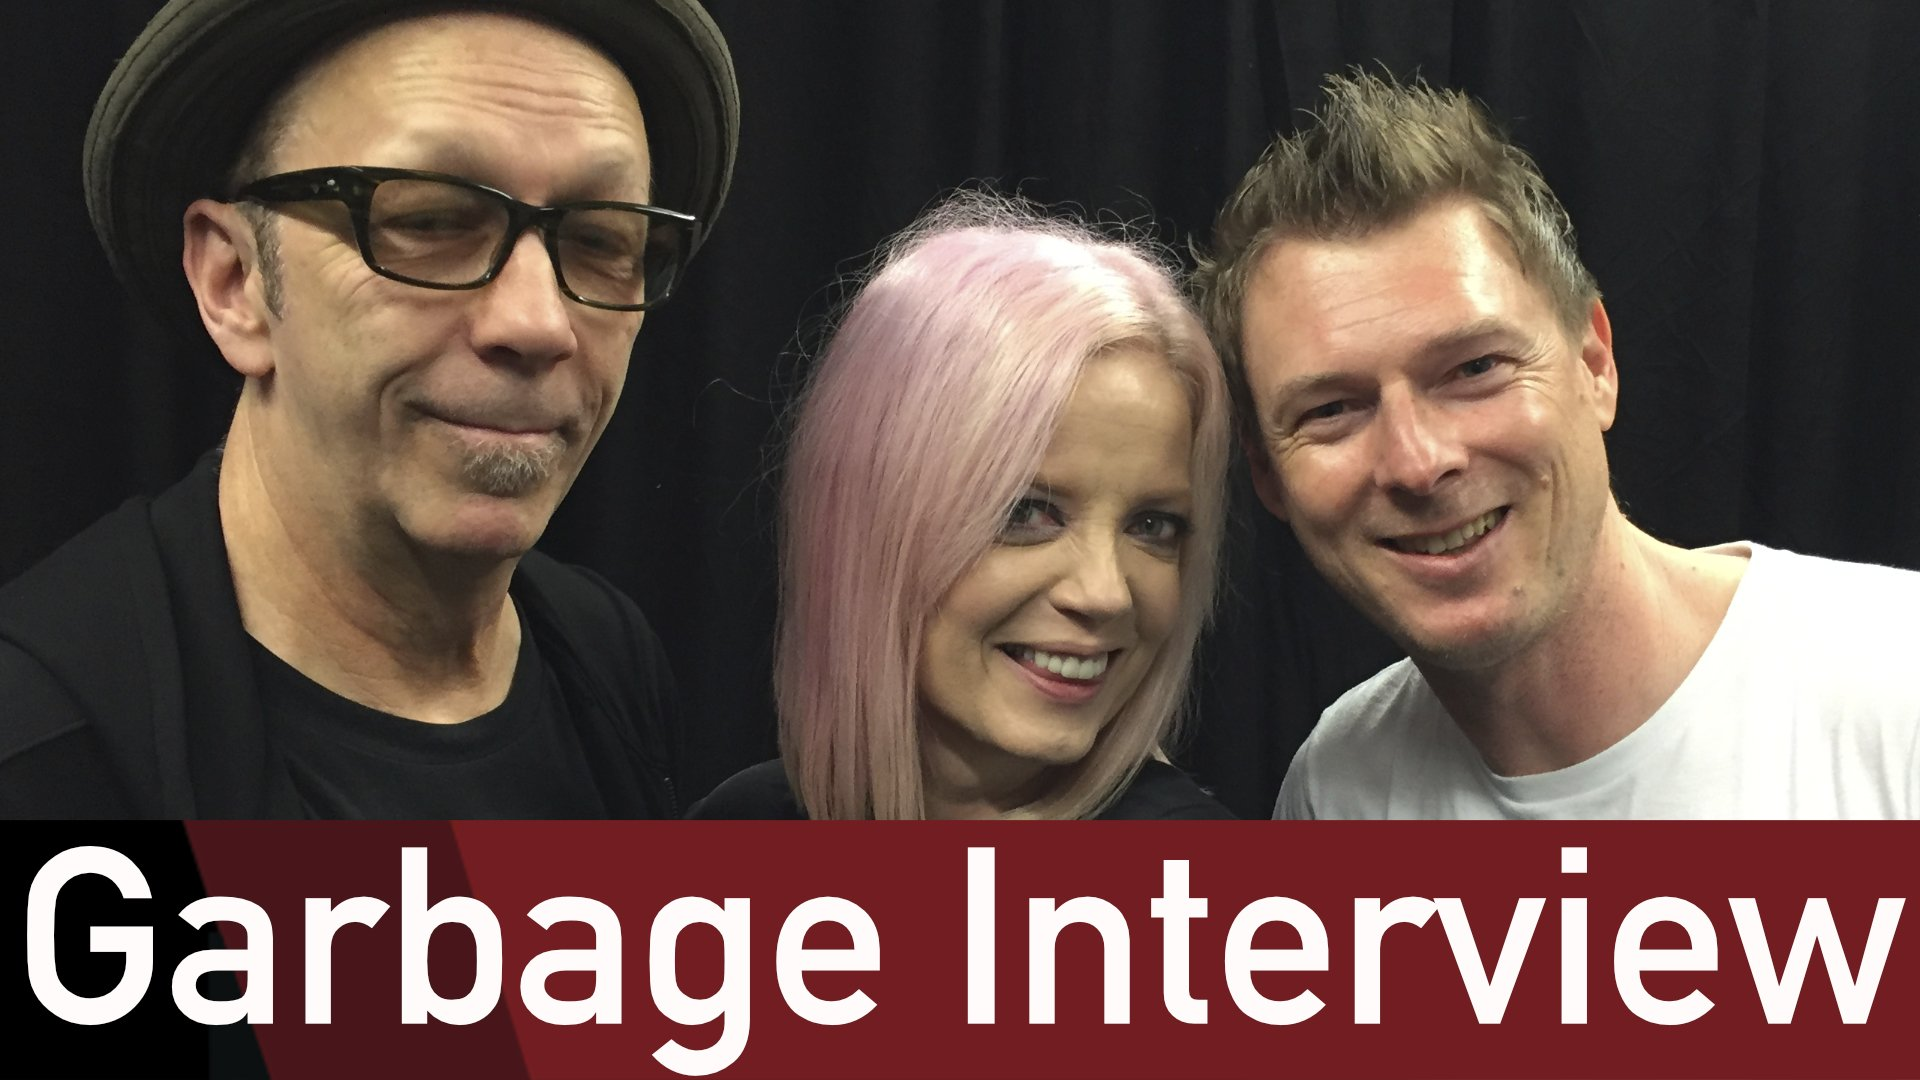 Garbage only please themselves - Das ROCK ANTENNE Interview